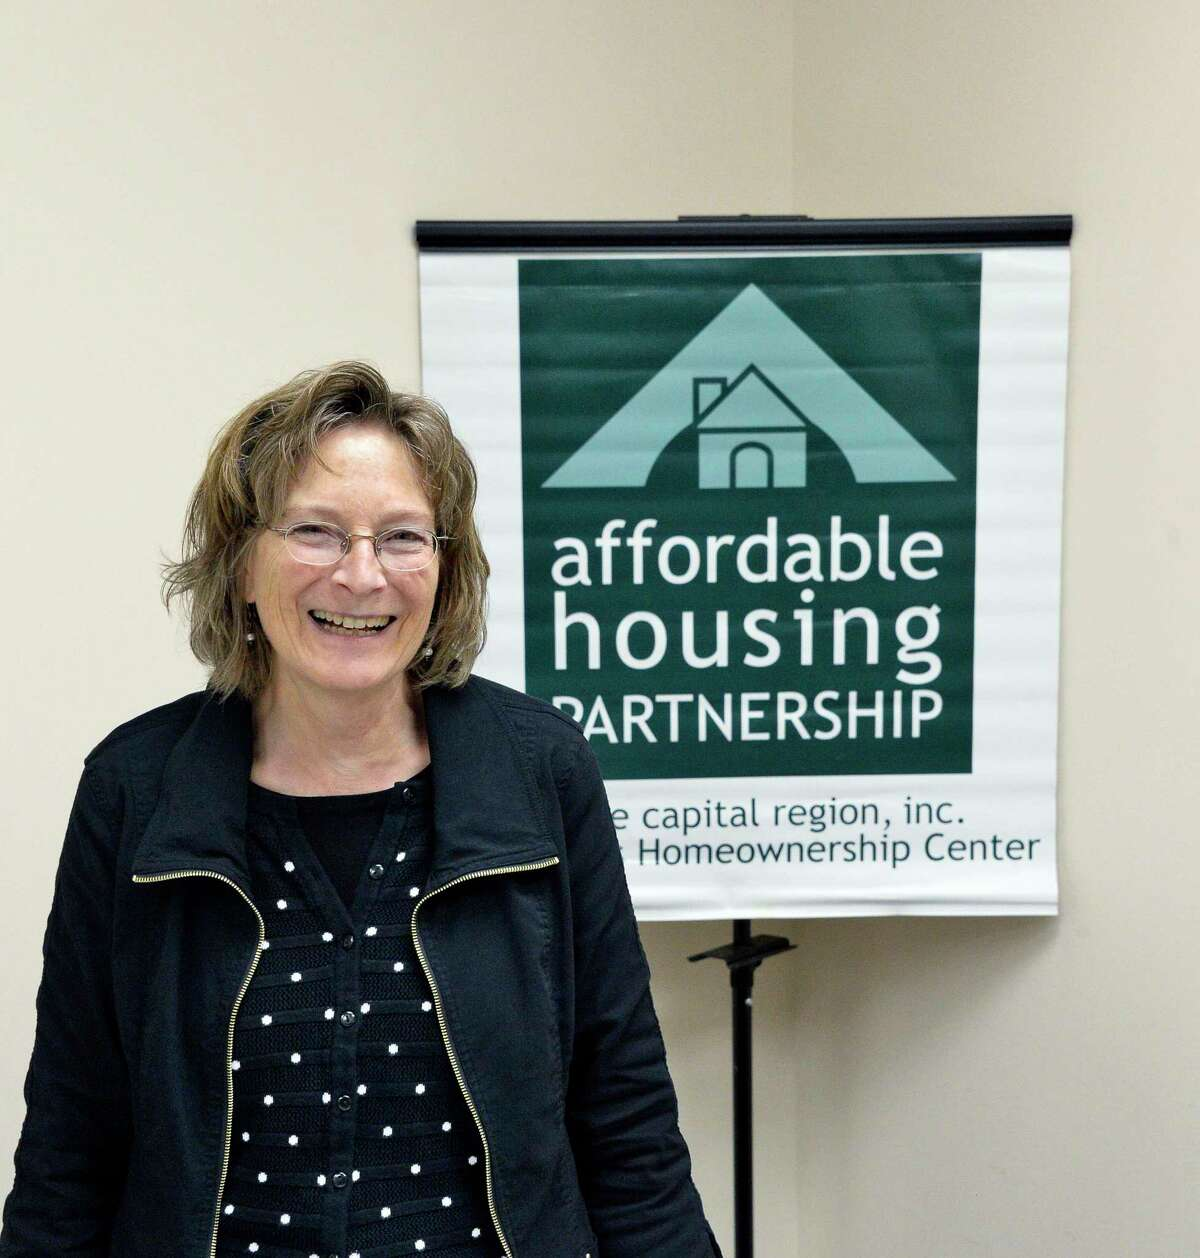 Affordable Housing Partnership executive director Susan Cotner in their offices Tuesday Nov. 6, 2018 in Albany, NY. (John Carl D'Annibale/Times Union)